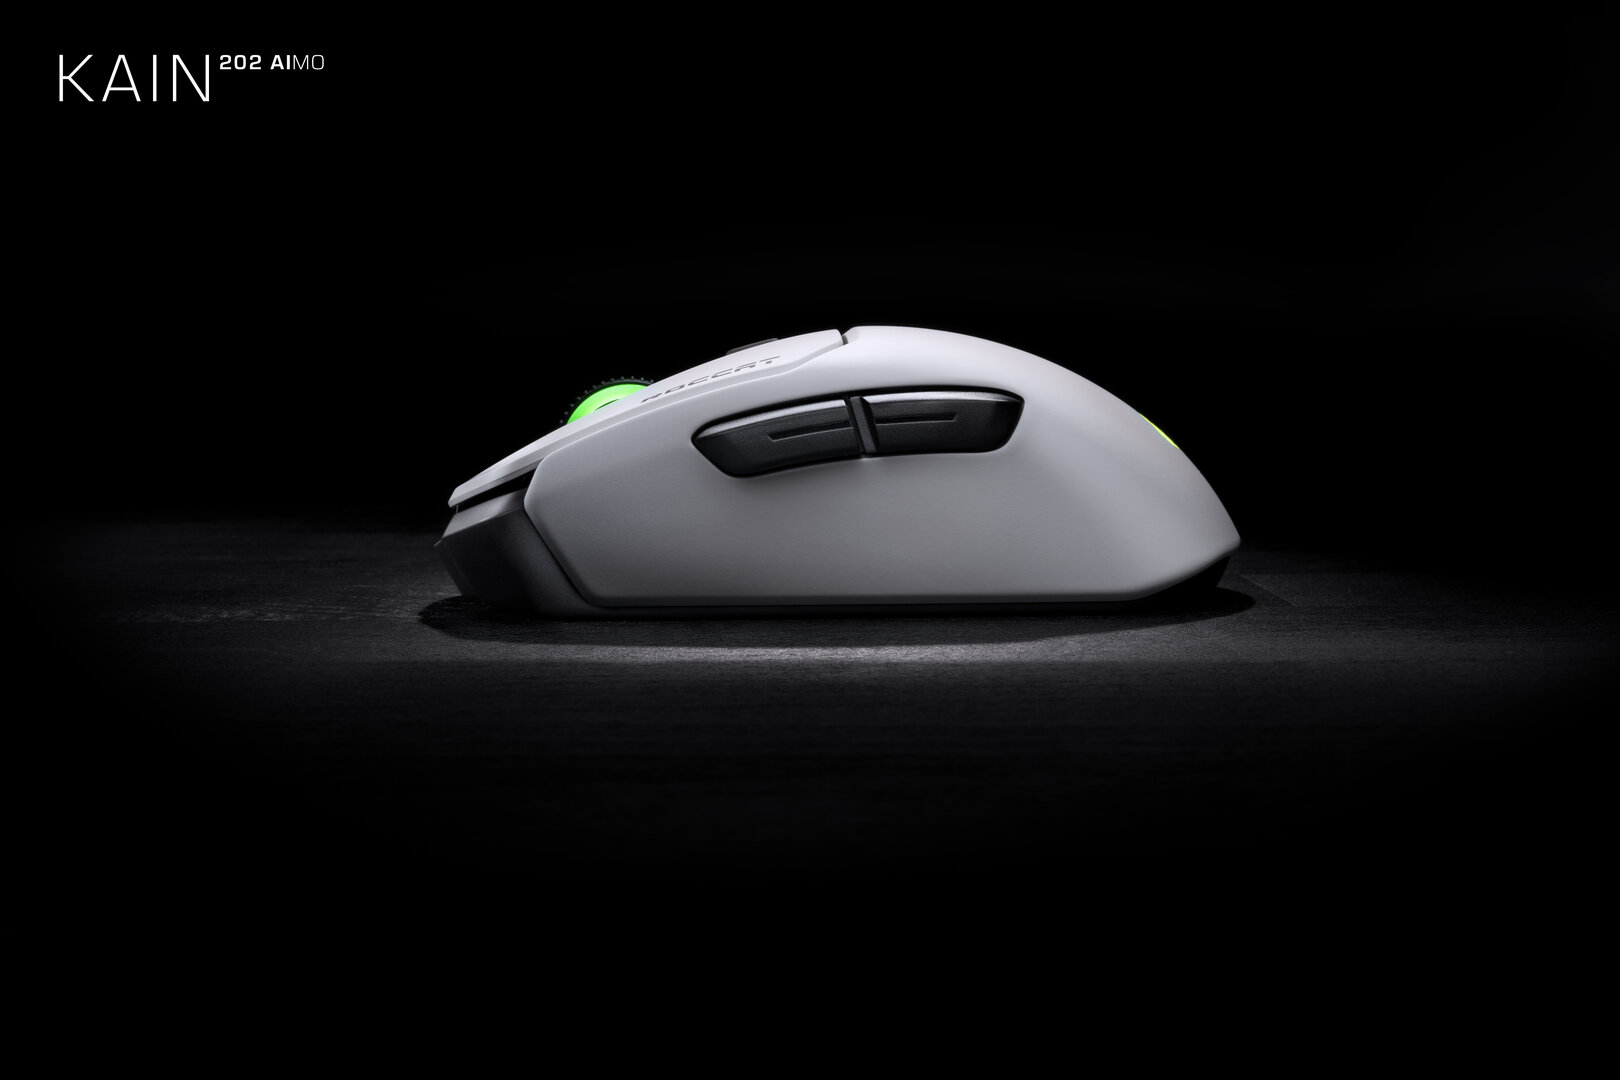 Roccat Kain 202 Aimo